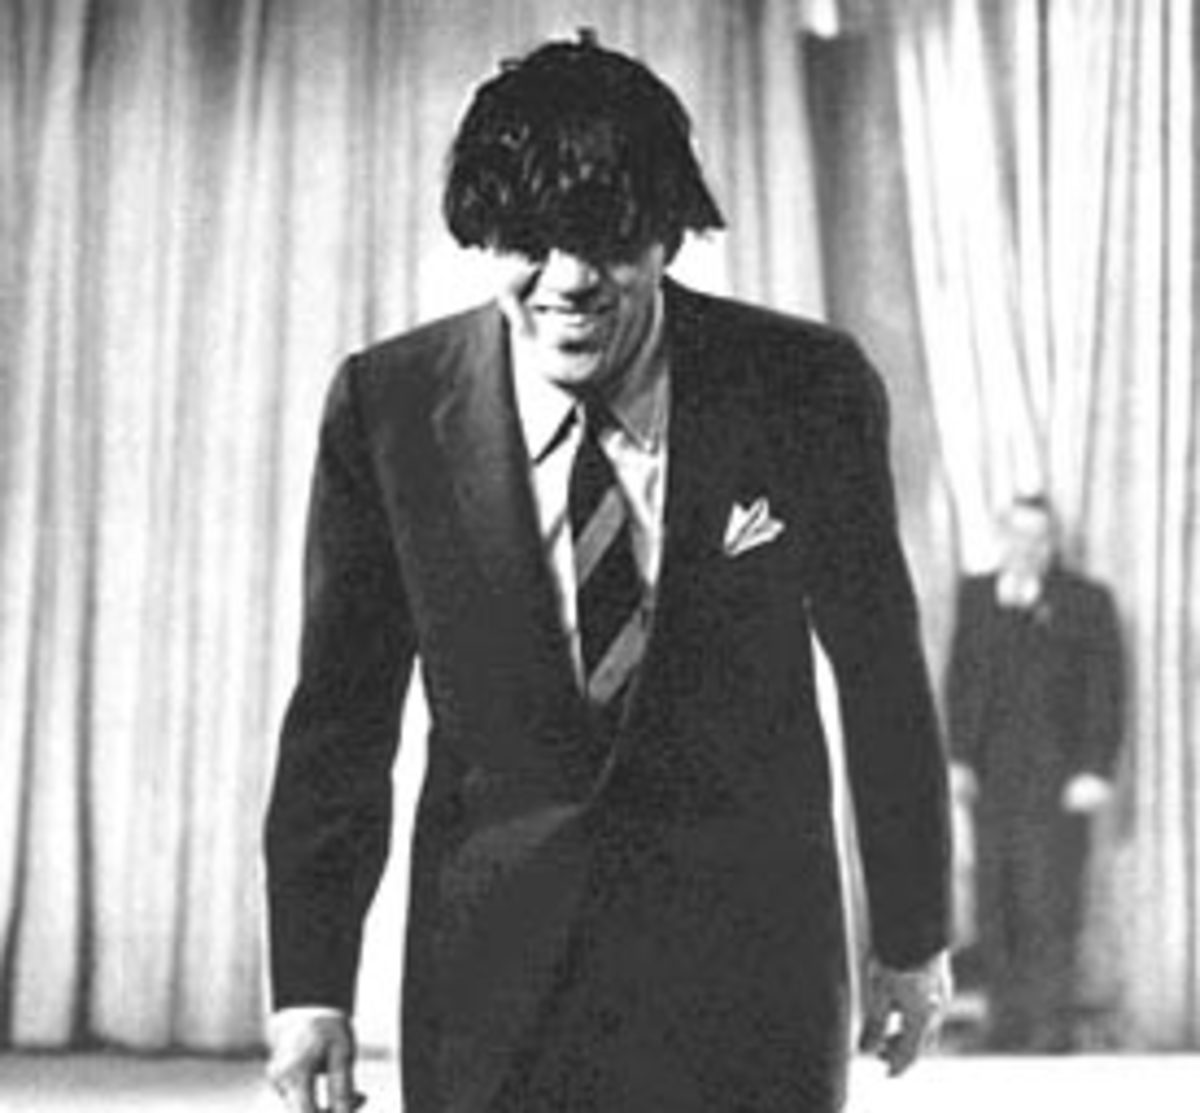 Ed Sullivan, a once very popular TV host, wearing a moptop wig